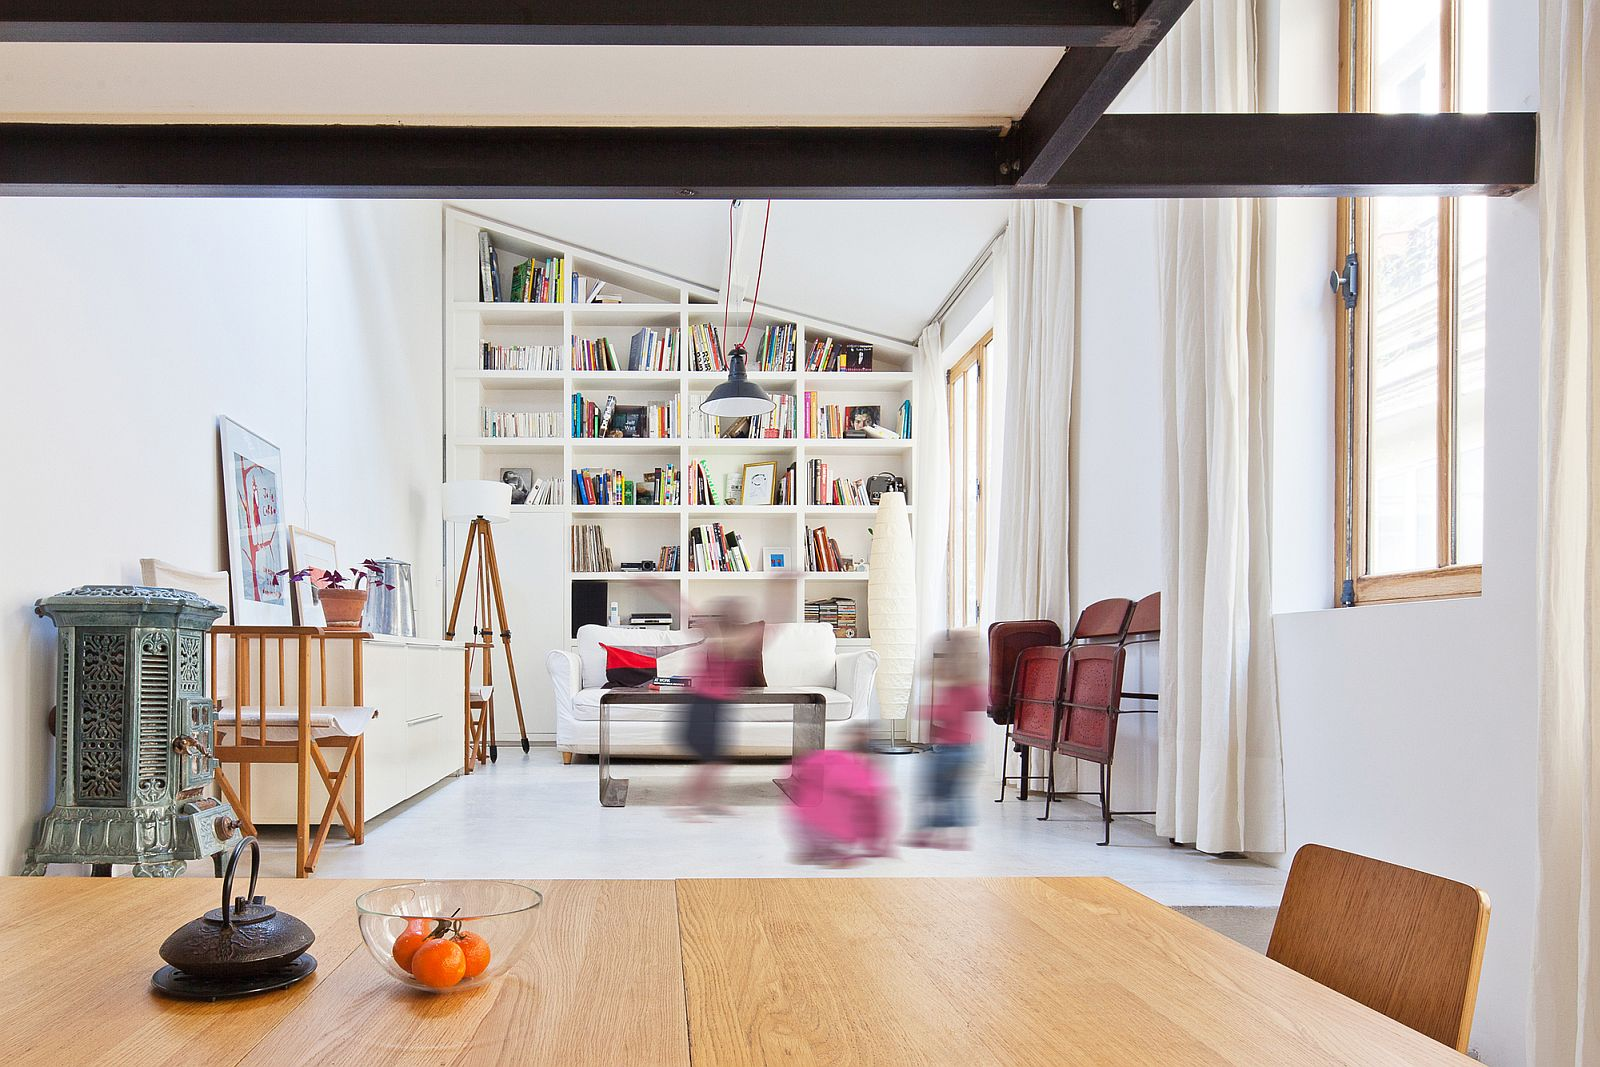 Gallery: A dingy workshop transformed into a bright, airy loft | NZI ...